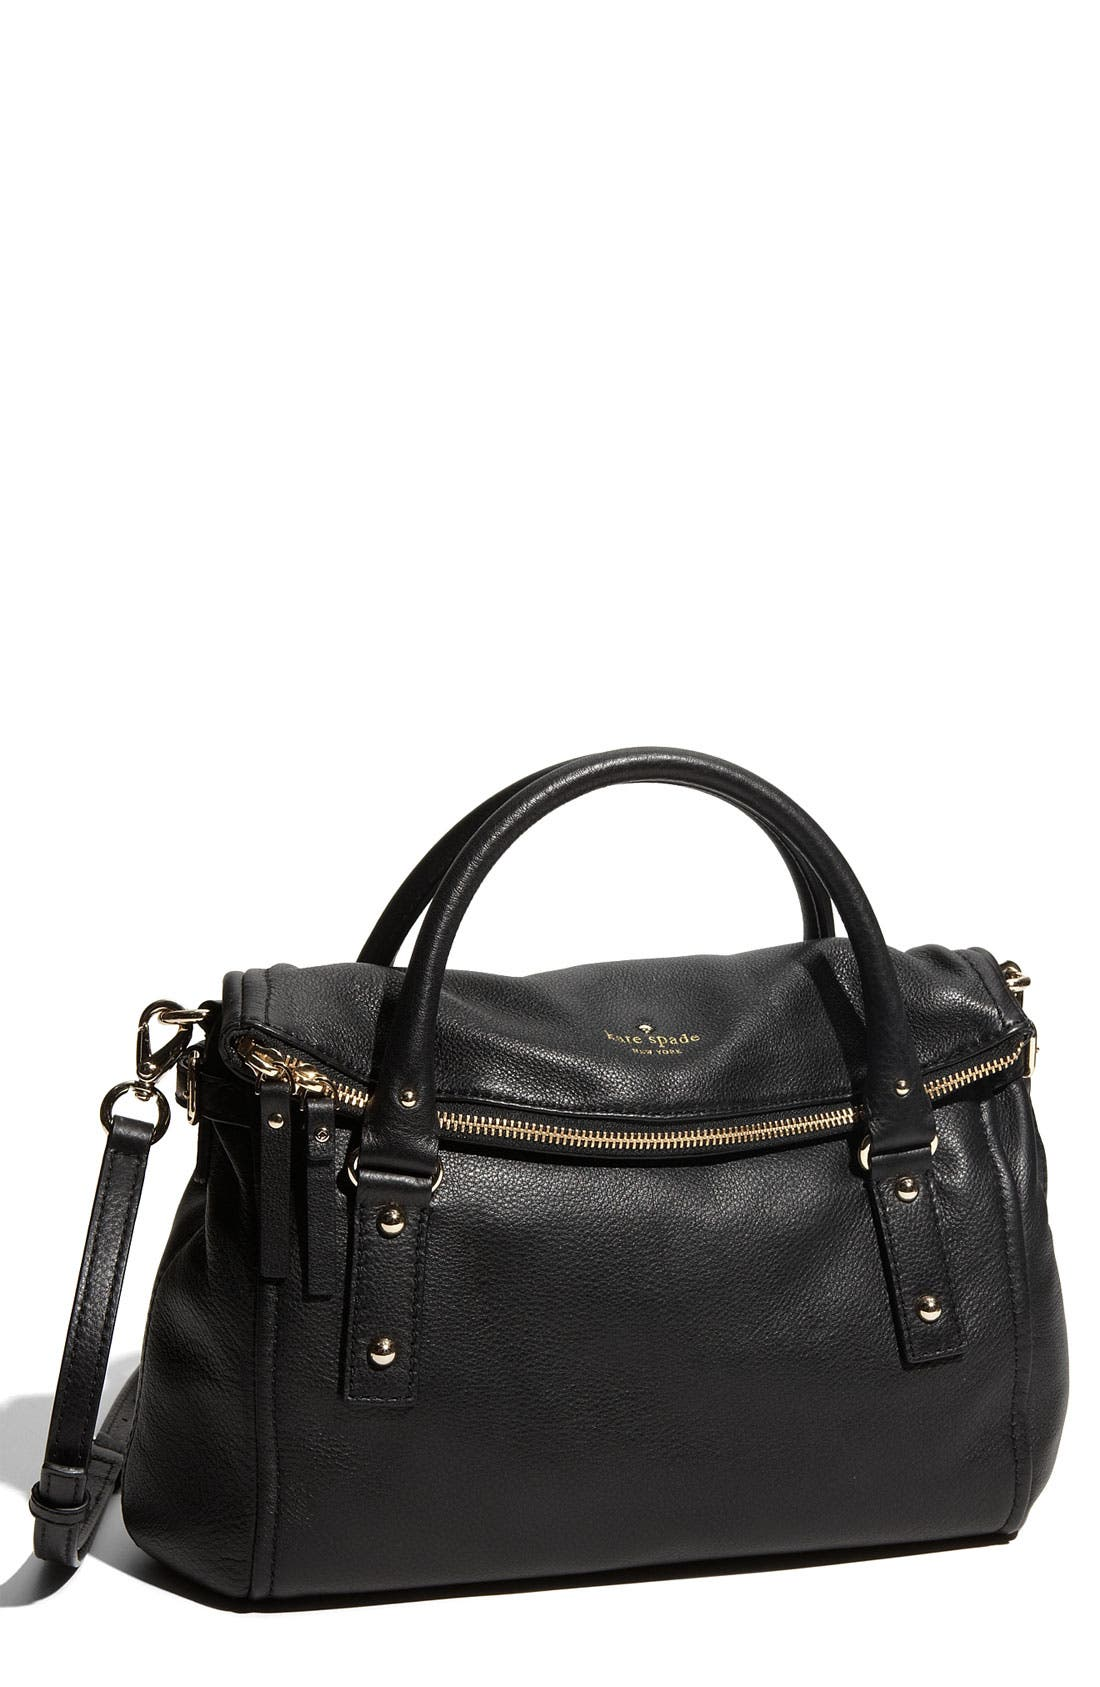 Main Image - kate spade new york 'cobble hill - leslie small' leather satchel